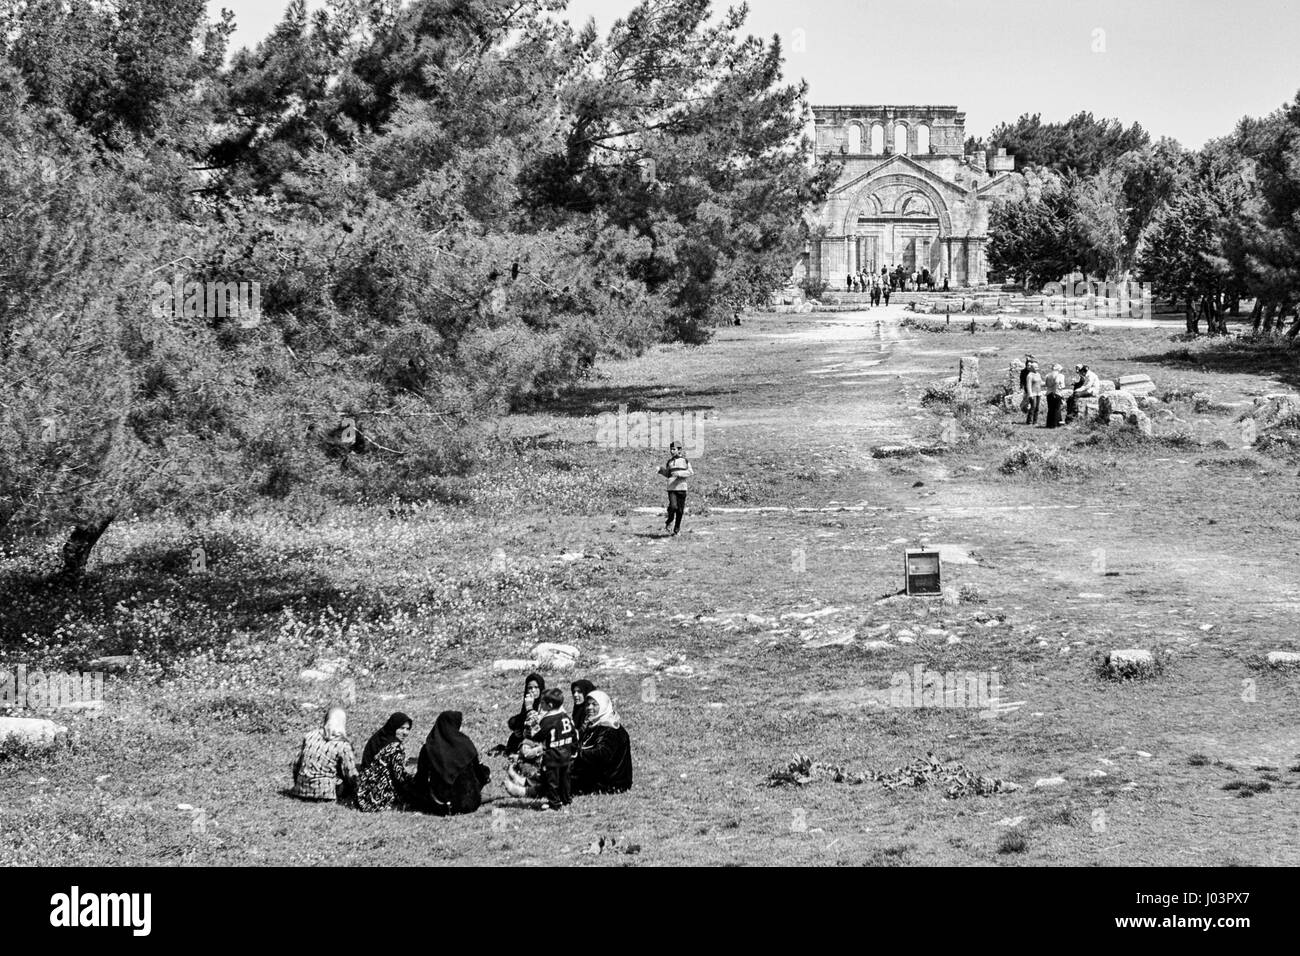 Families having picnics at the ruins of Basilica of St. Simeon. - Stock Image